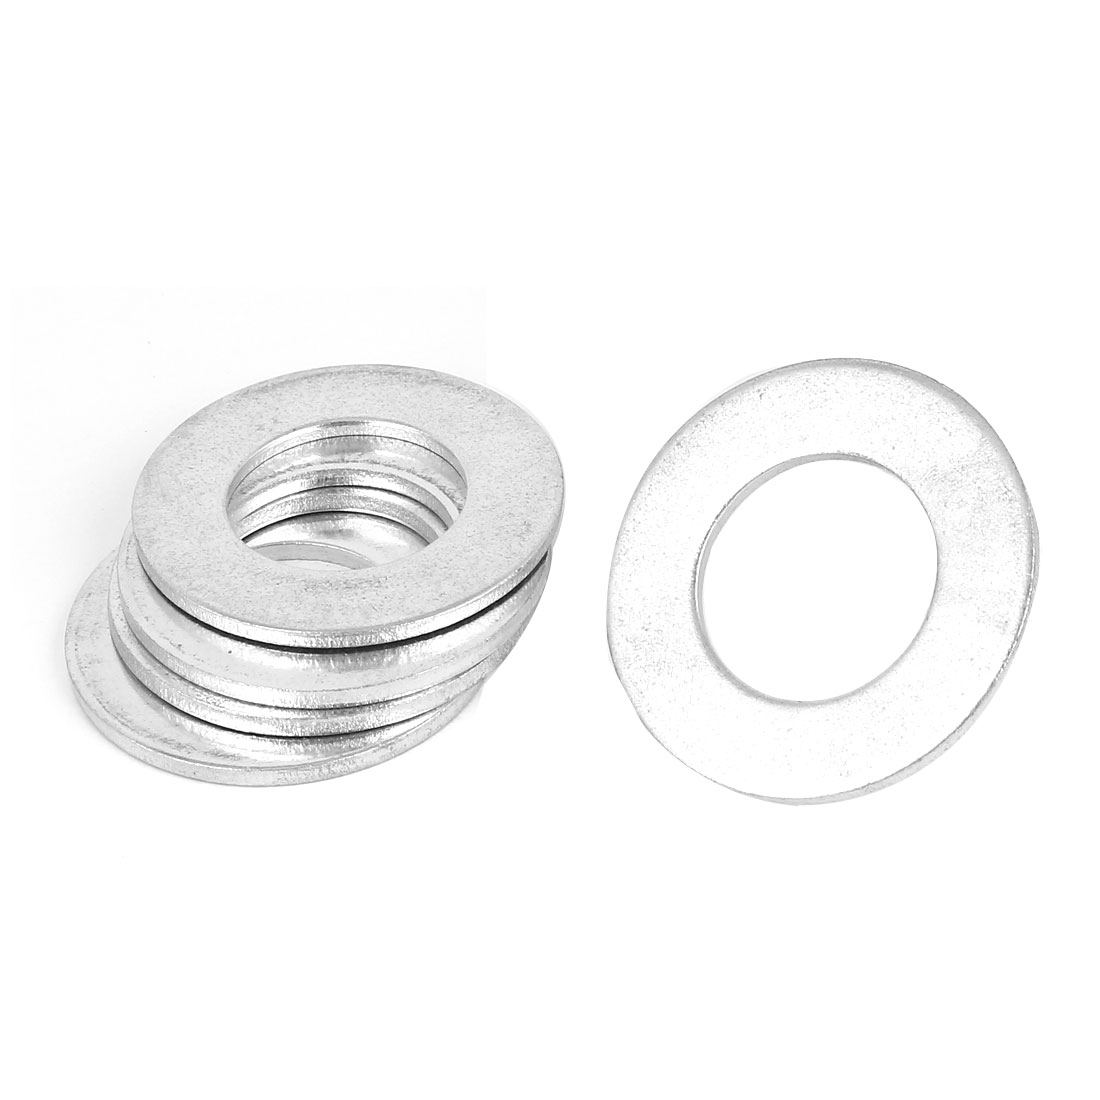 30mm x 54mm Zinc Plated Flat Pads Washers Gaskets Fasteners GB97 5PCS